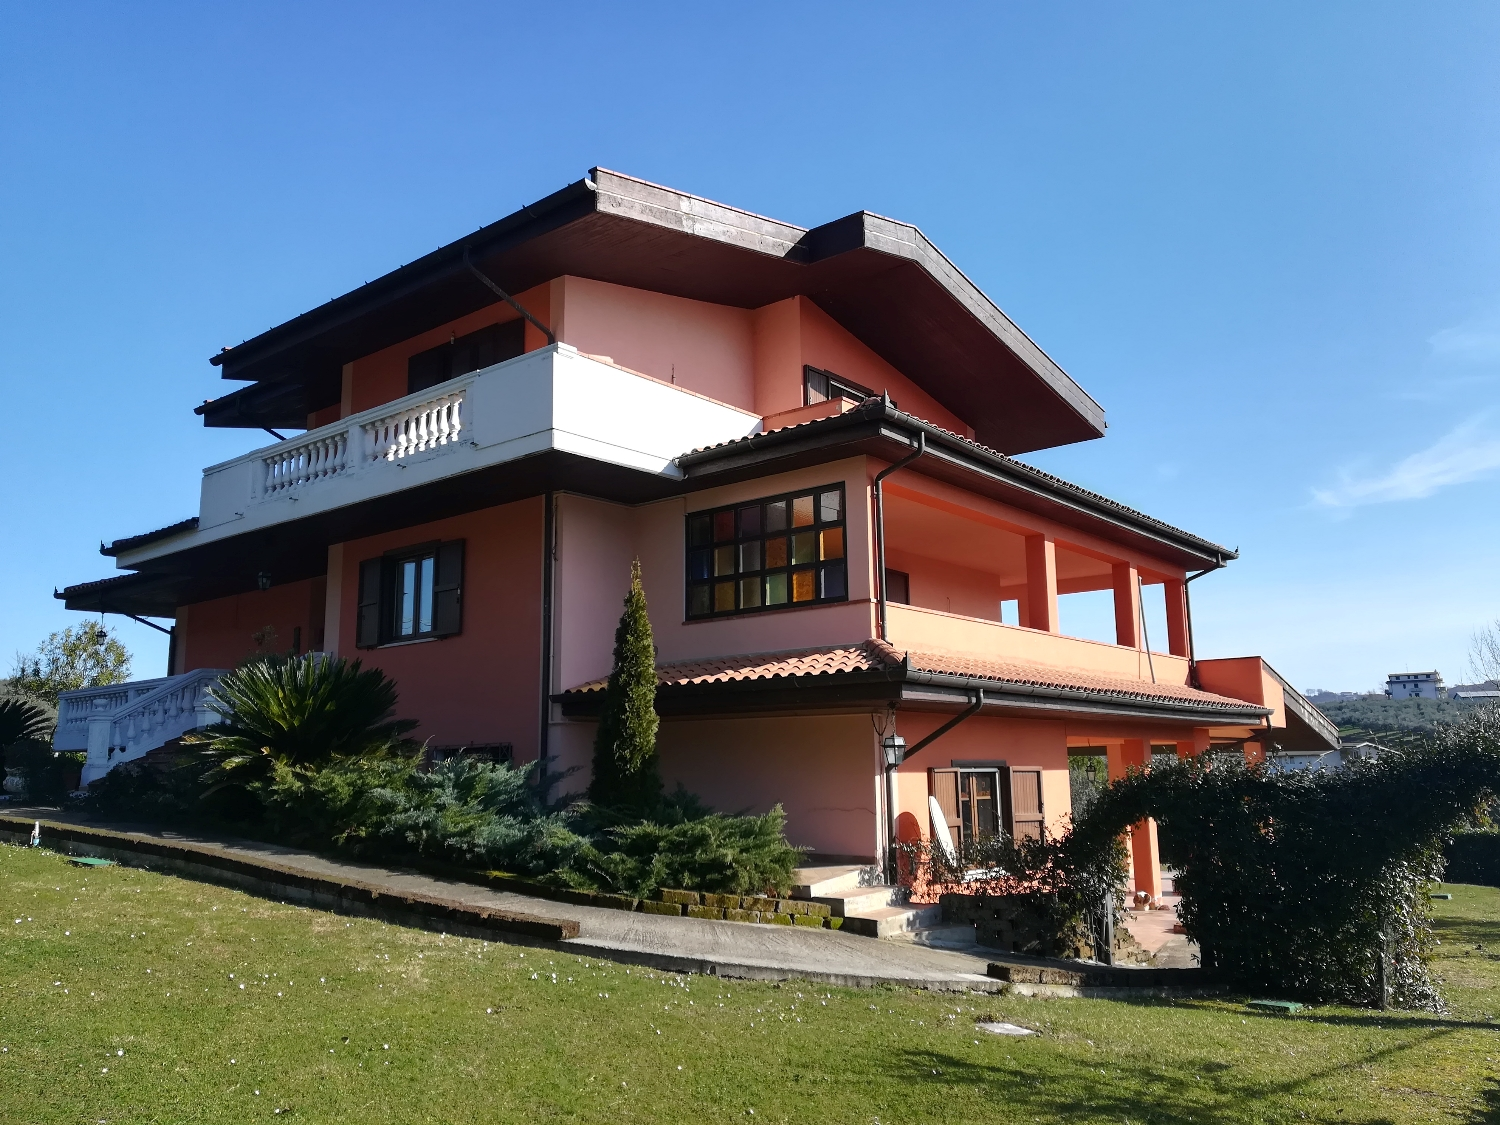 Country Houses Country Houses for sale Penne (PE), Villa Valentino - Penne - EUR 432.293 630